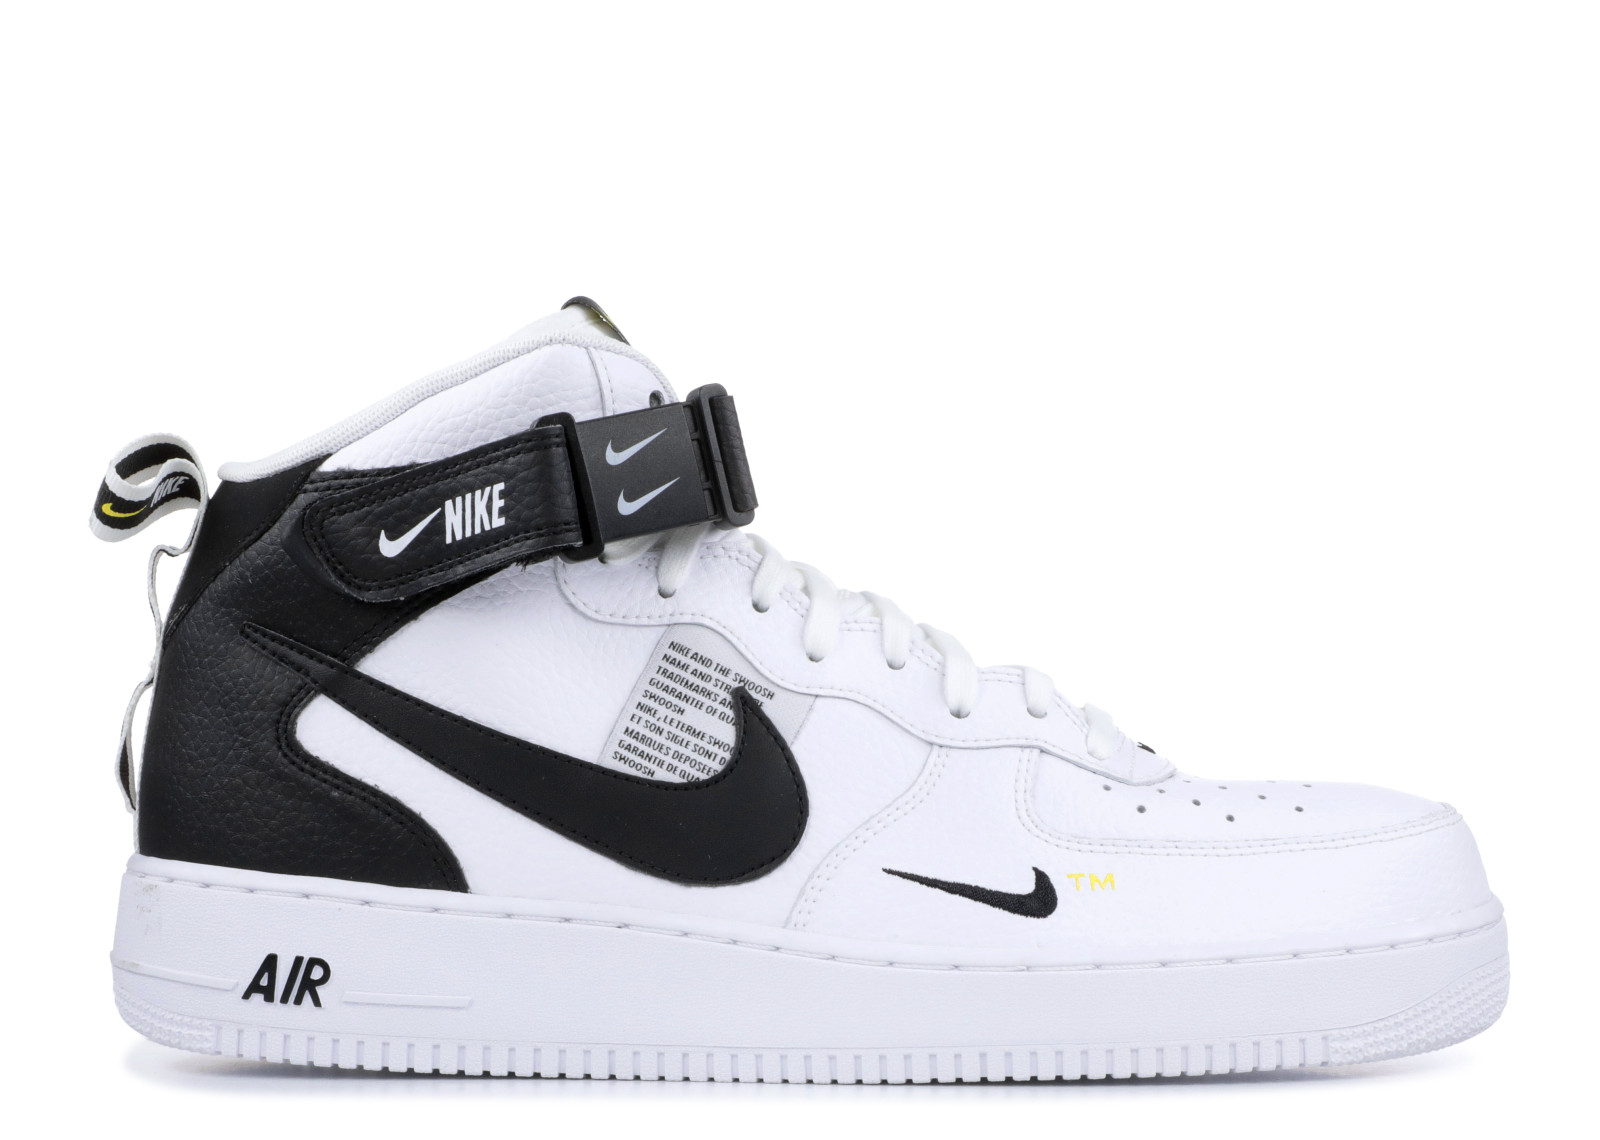 530d8a794733 Nike Air Force 1 Mid Utility White Black - 0